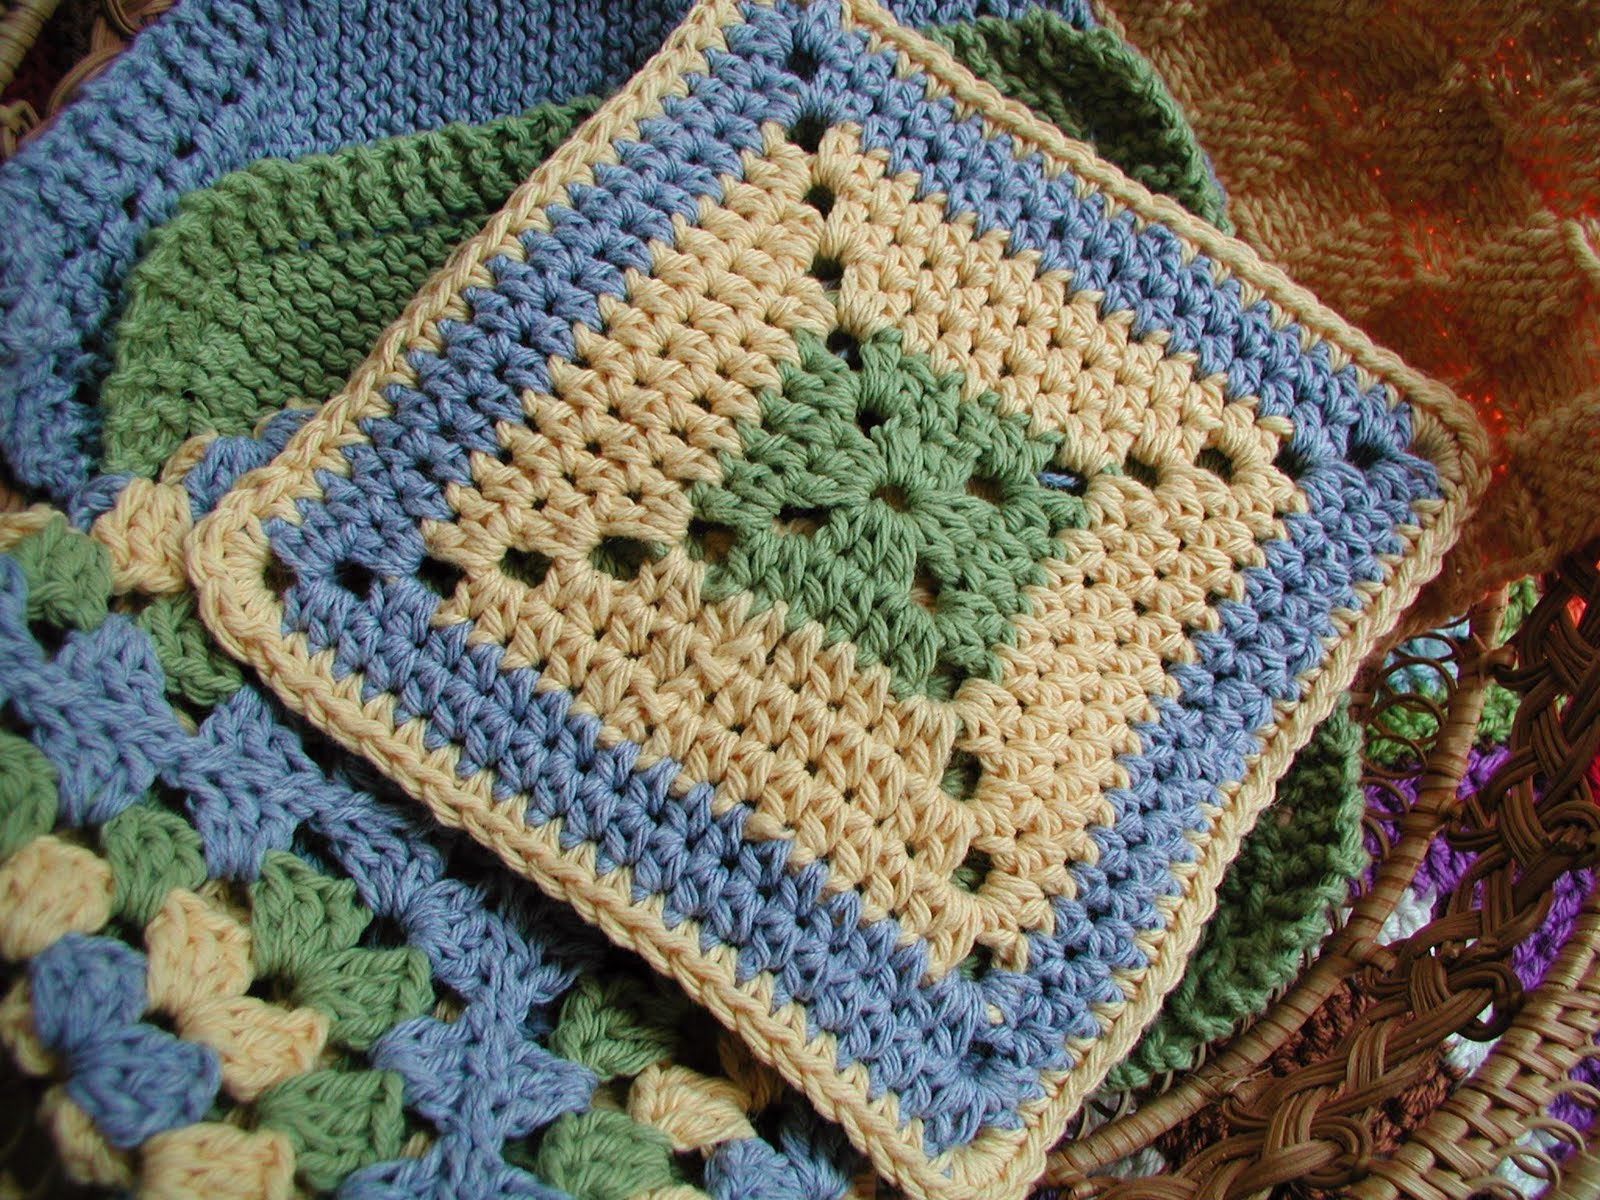 Crochet Granny Square Dishcloth Pattern : Fiddlesticks - My crochet and knitting ramblings ...